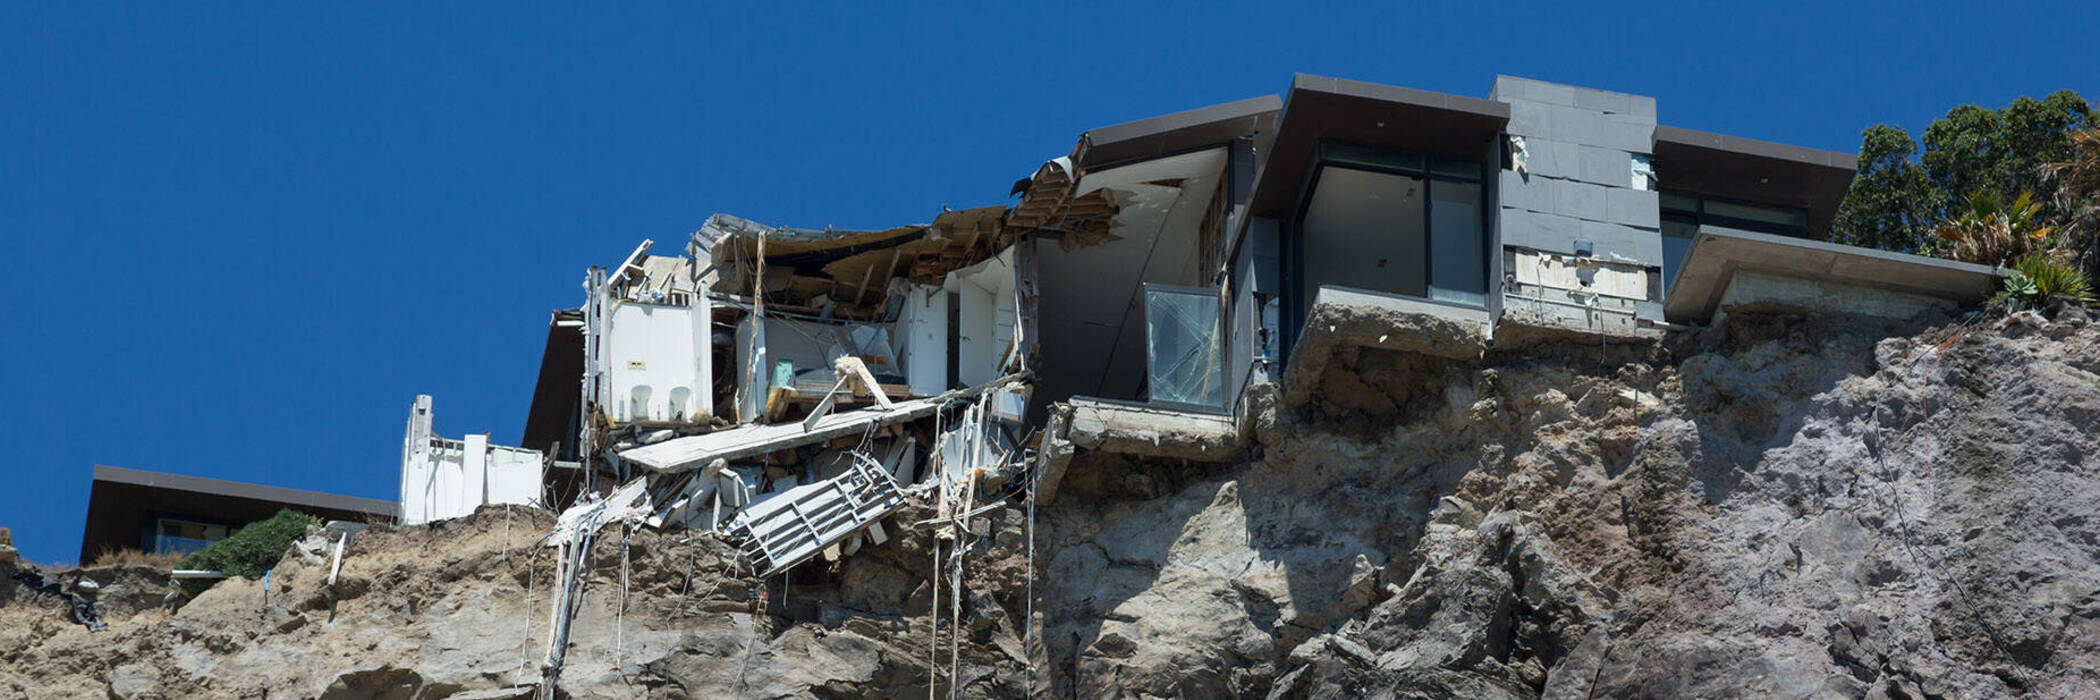 Home damaged by earthquake